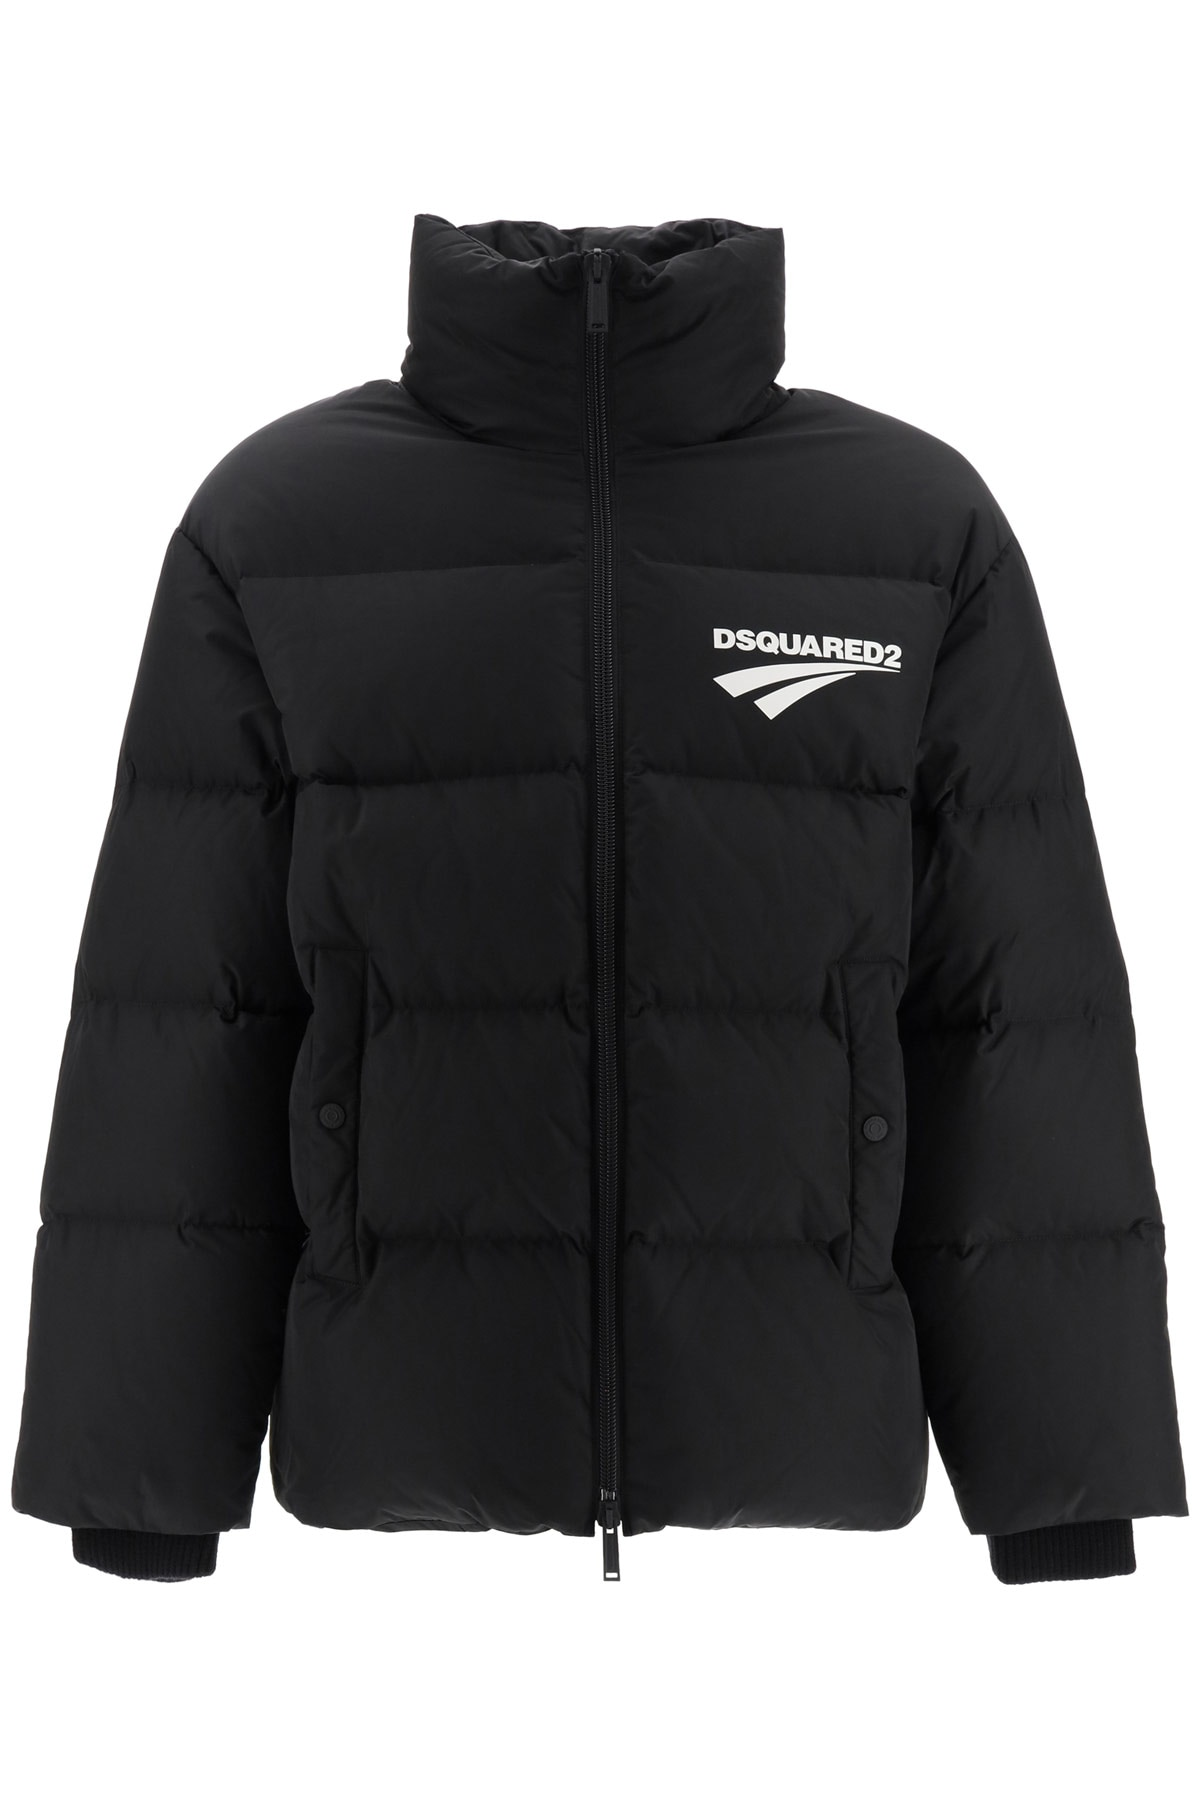 DSQUARED2 DOWN JACKET WITH LOGO 46 Black